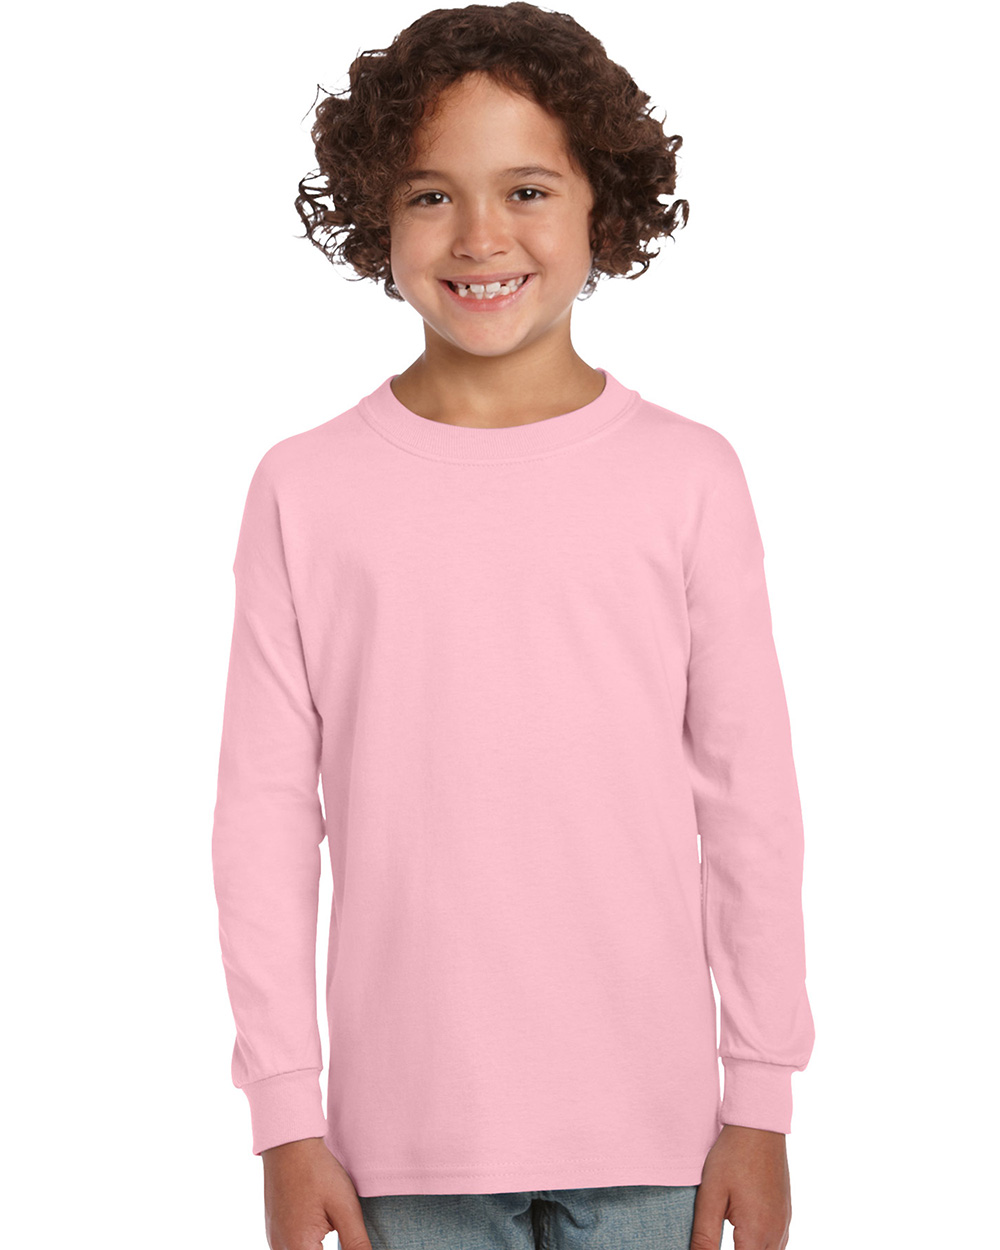 Gildan 2400B     Ultra Cotton™    Classic Fit Youth Long Sleeve T-Shirt    6.0 oz. 100% Cotton